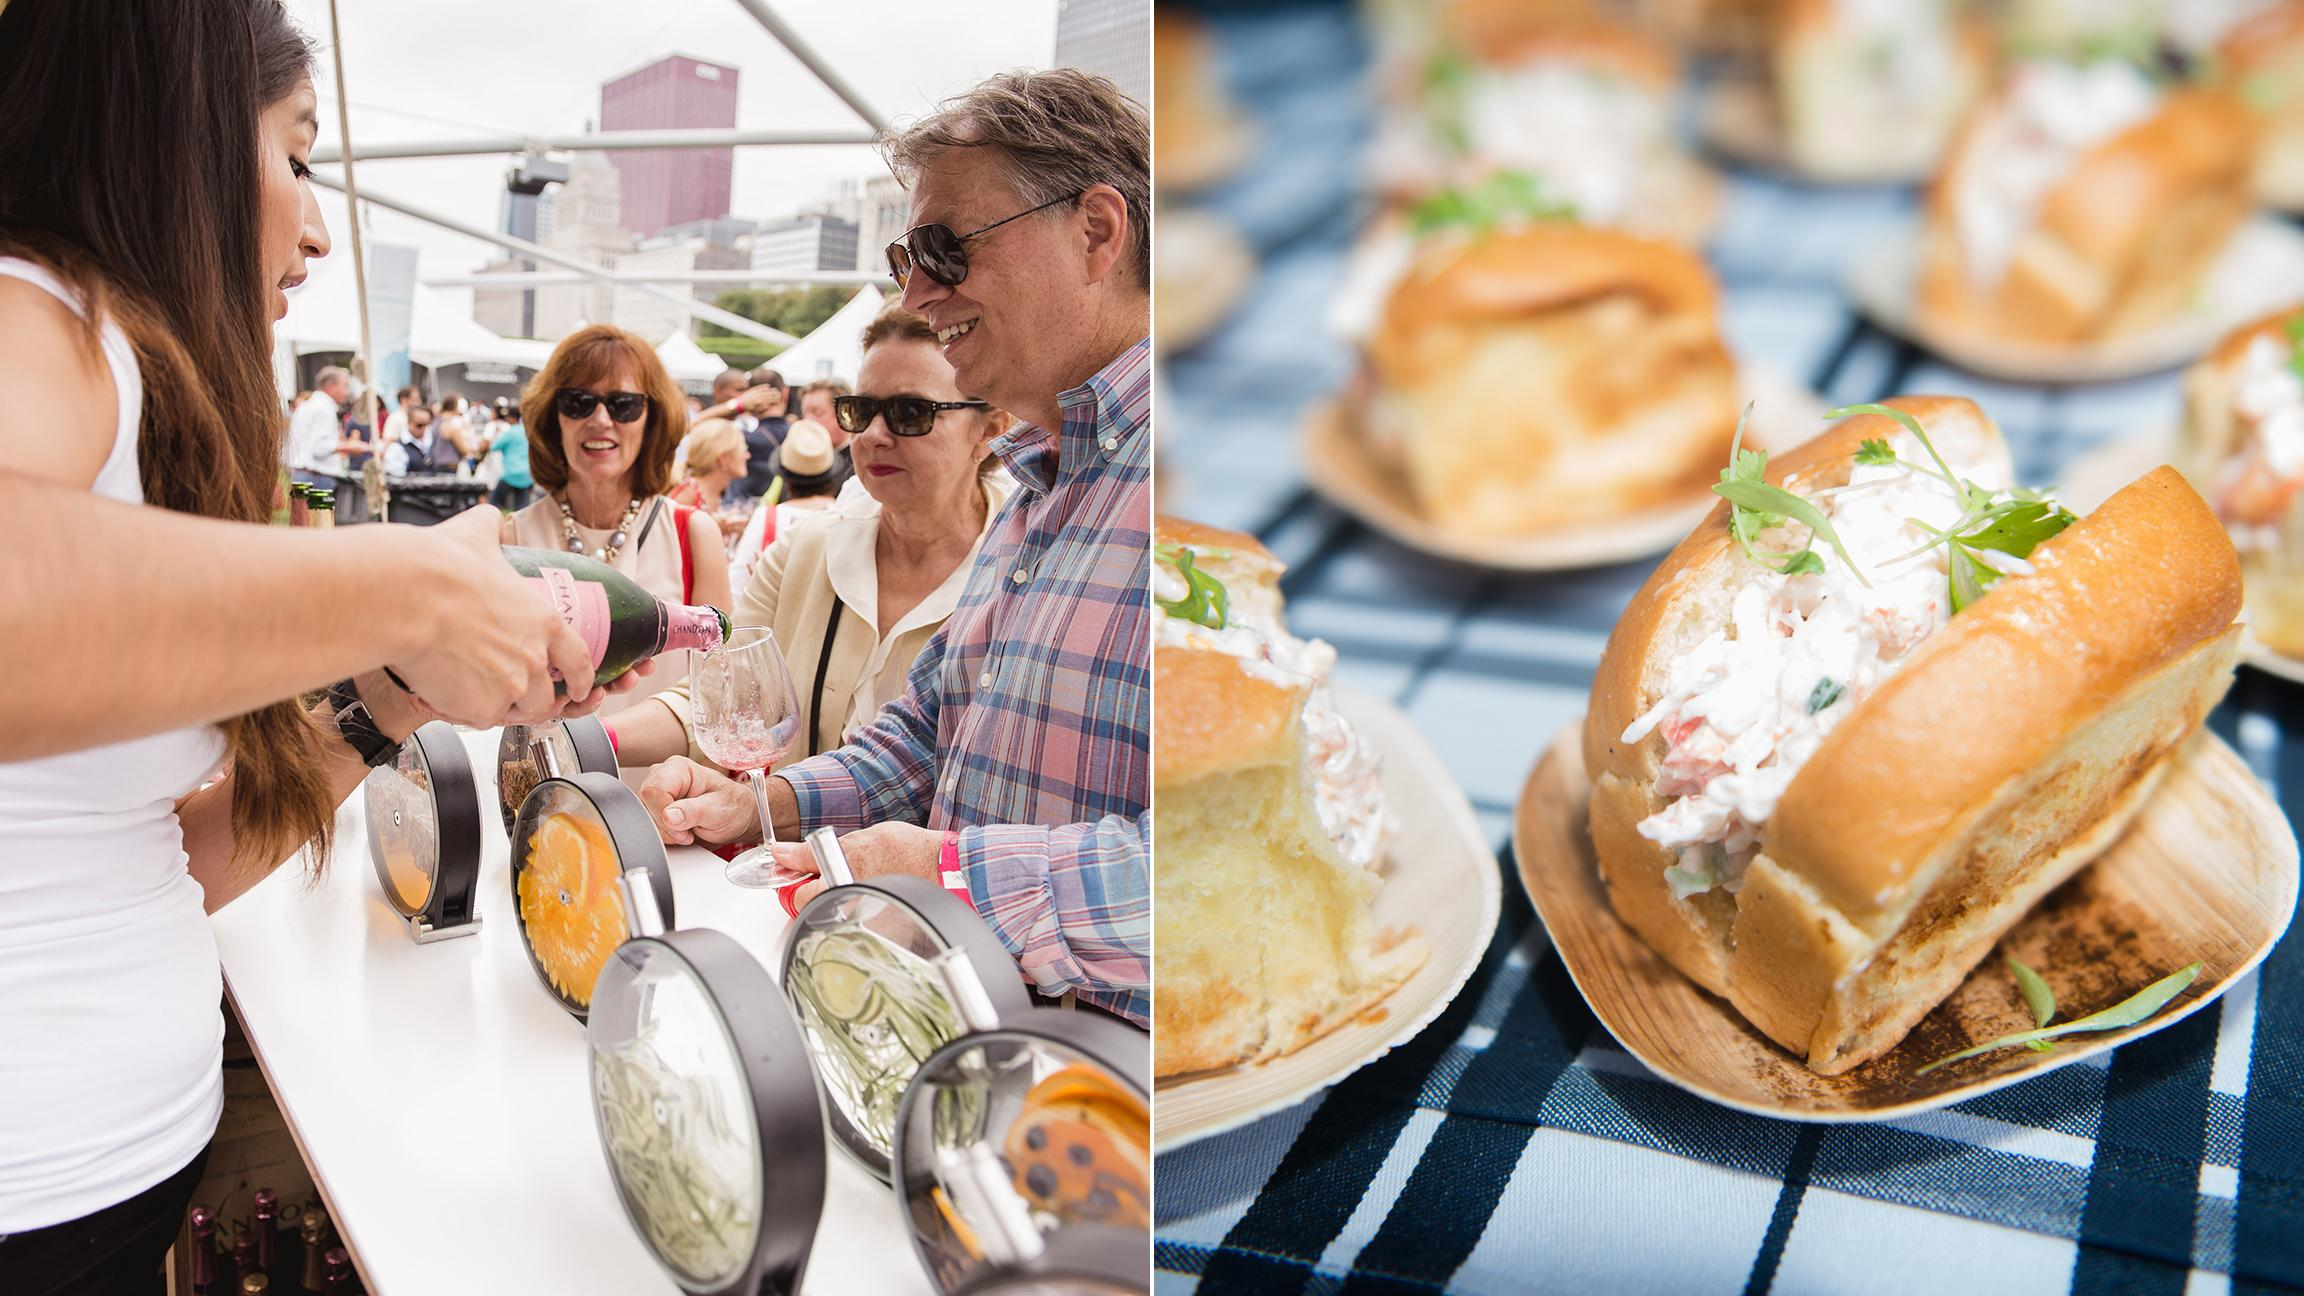 Chicago Gourmet attendees in 2015 enjoy Champagne, left, and Maine lobster rolls. (Photos by Nathanael Filbert, left, Beking Joassaint / Courtesy of Chicago Gourmet)